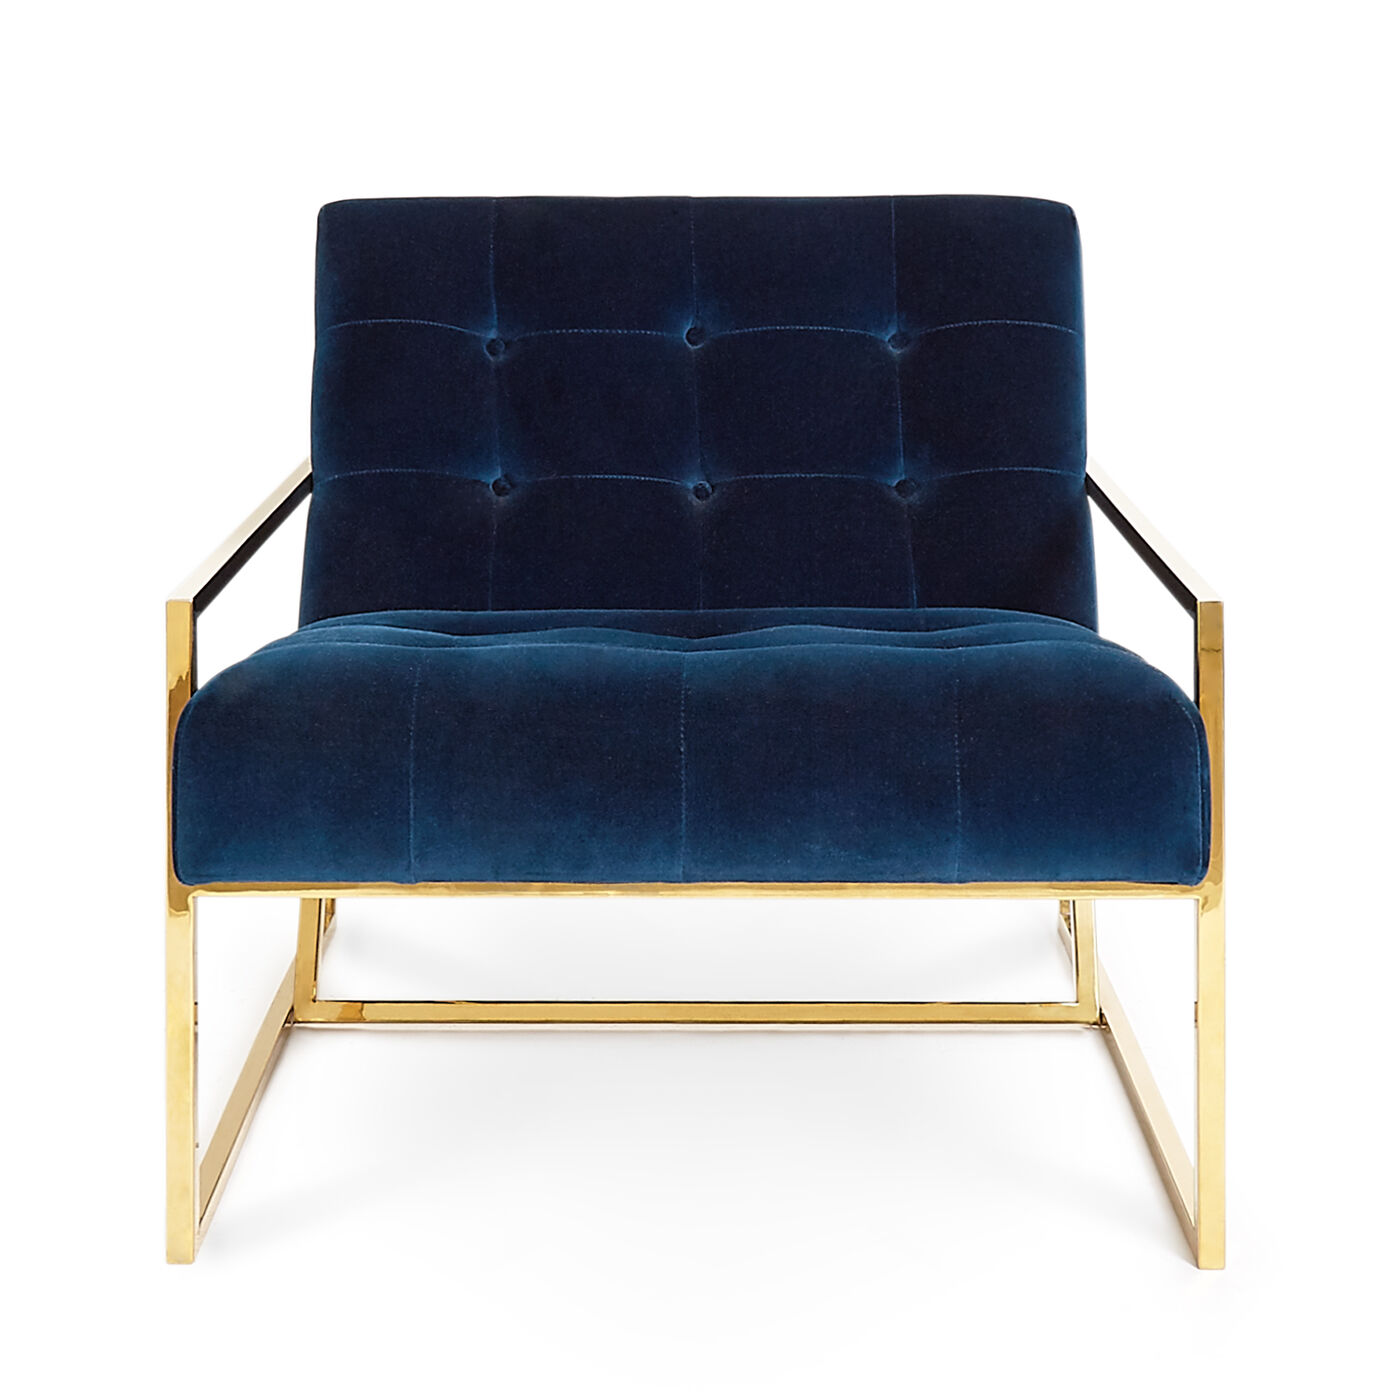 chairs goldfinger lounge chair